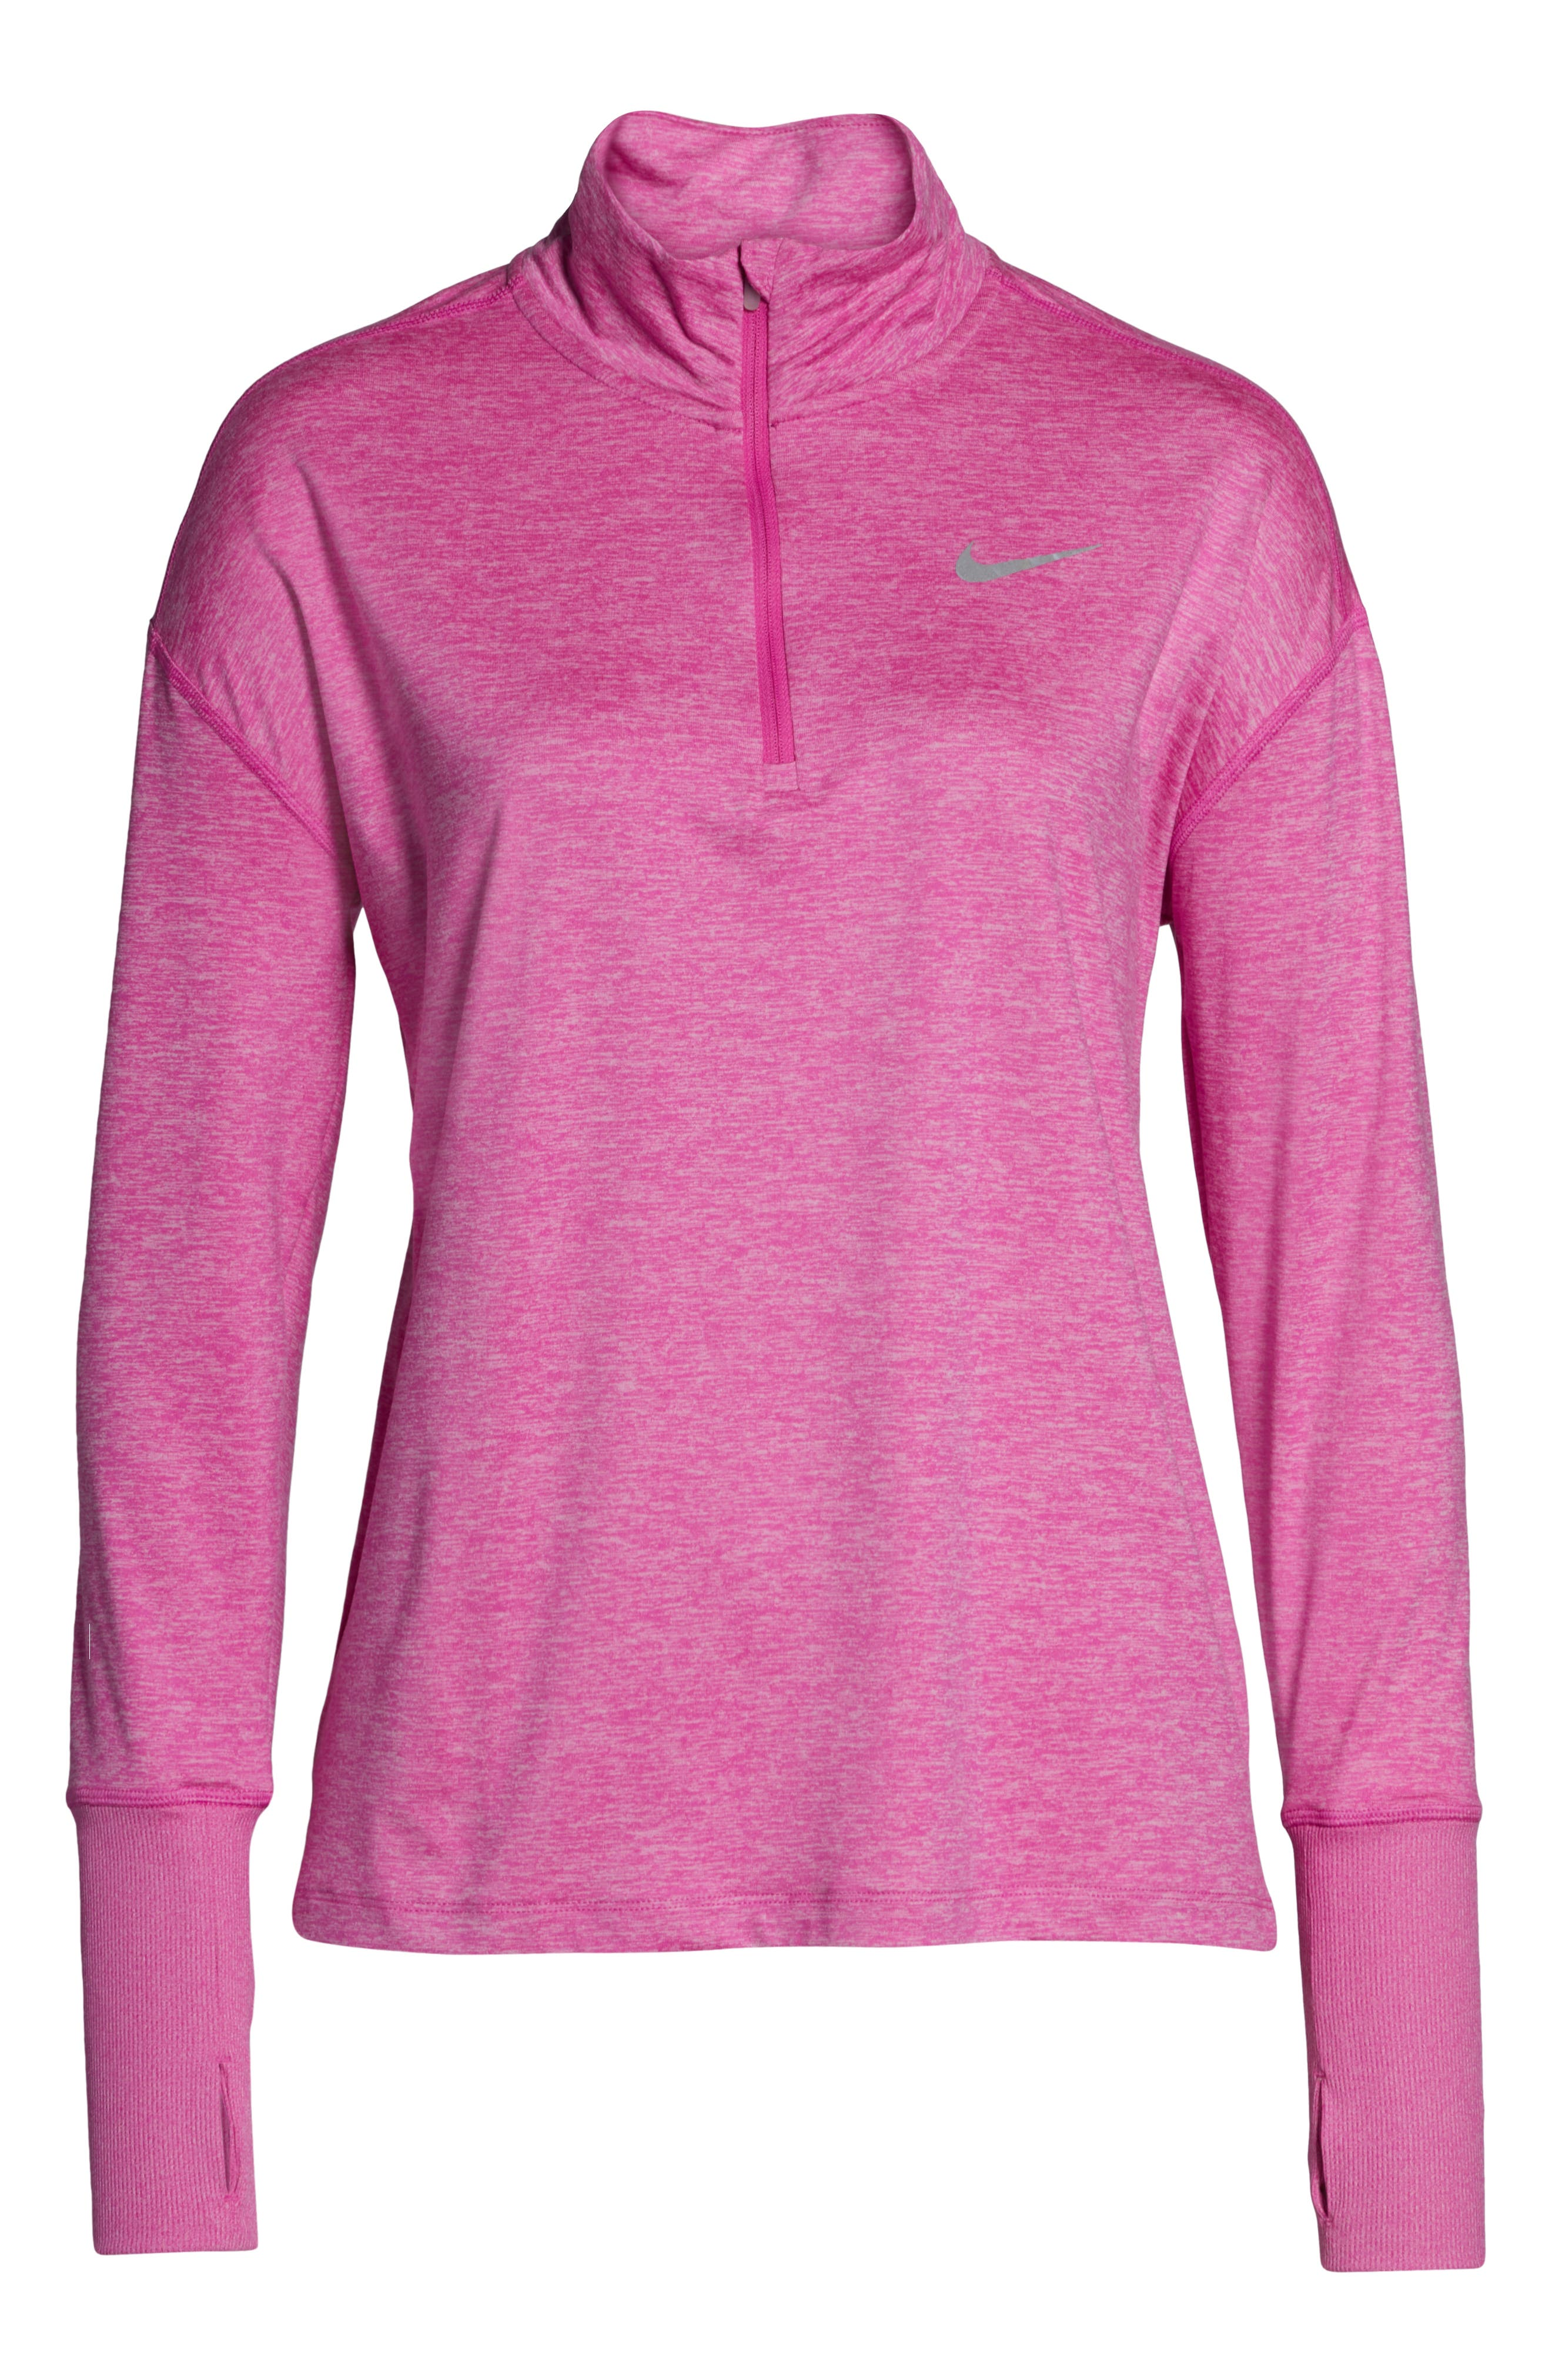 NIKE, Element Long-Sleeve Running Top, Alternate thumbnail 7, color, ACTIVE FUCHSIA/ PINK RISE